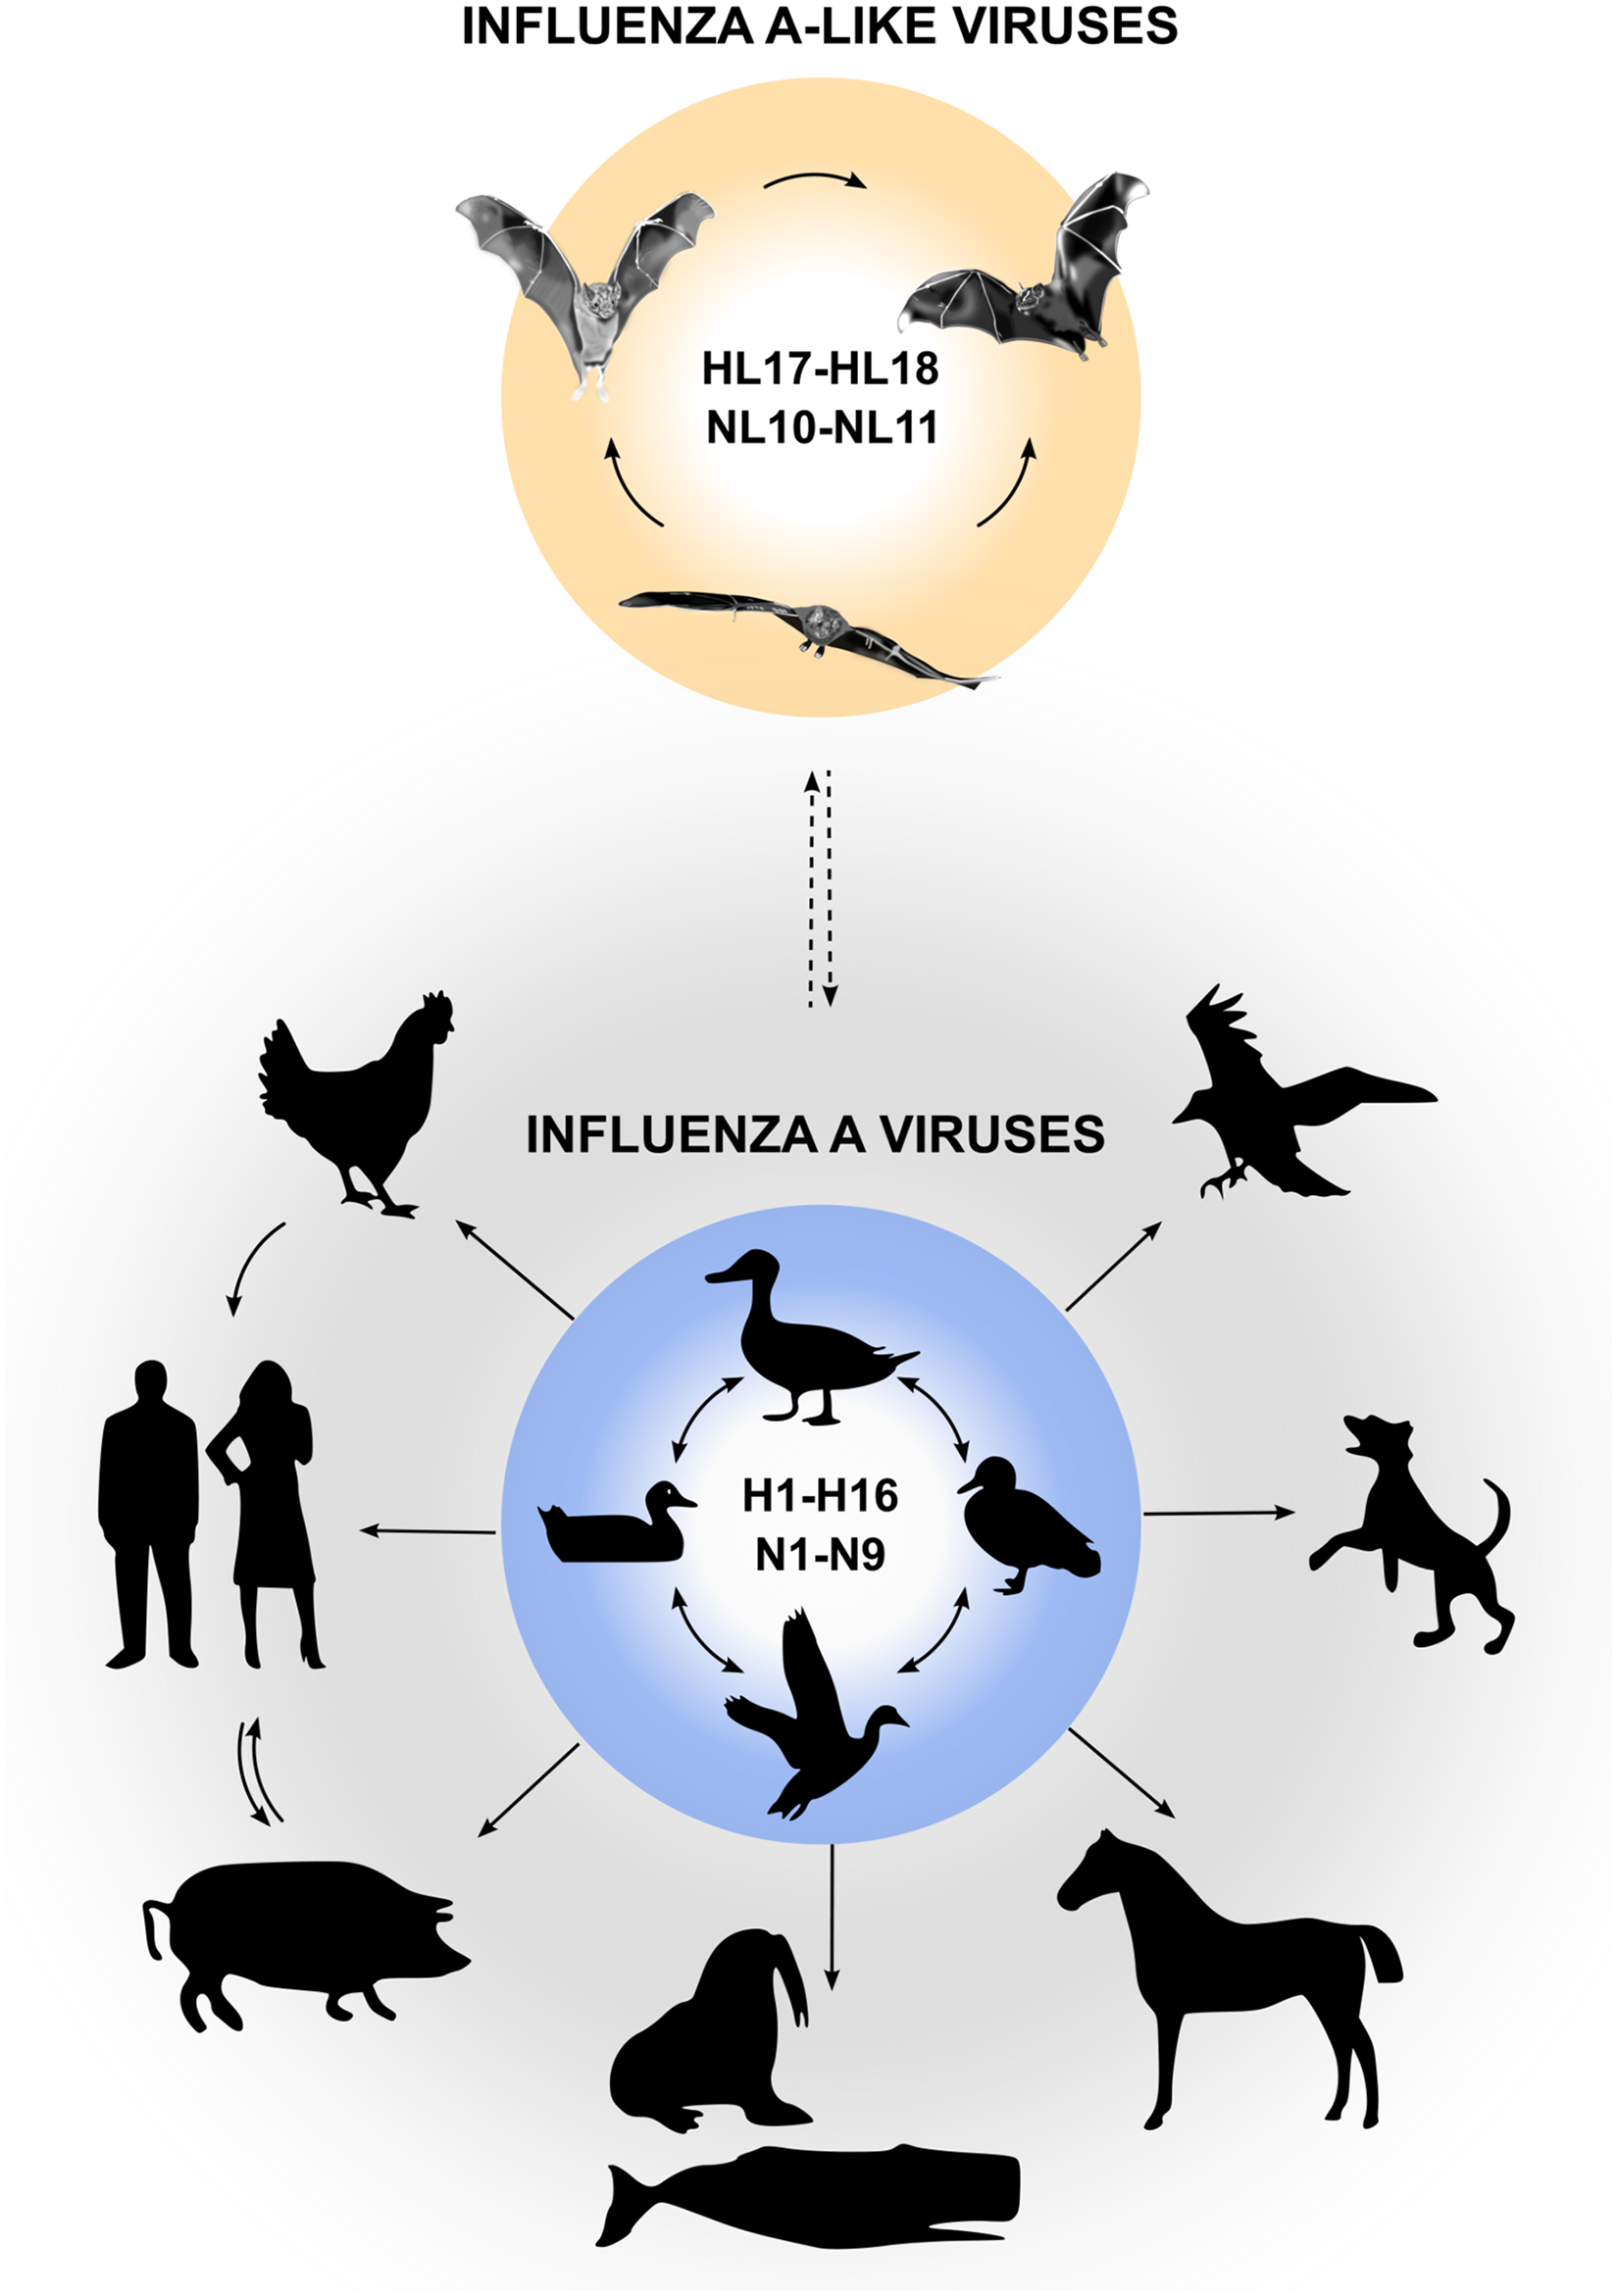 Reservoirs of IAVs and bat influenza-A-like viruses.